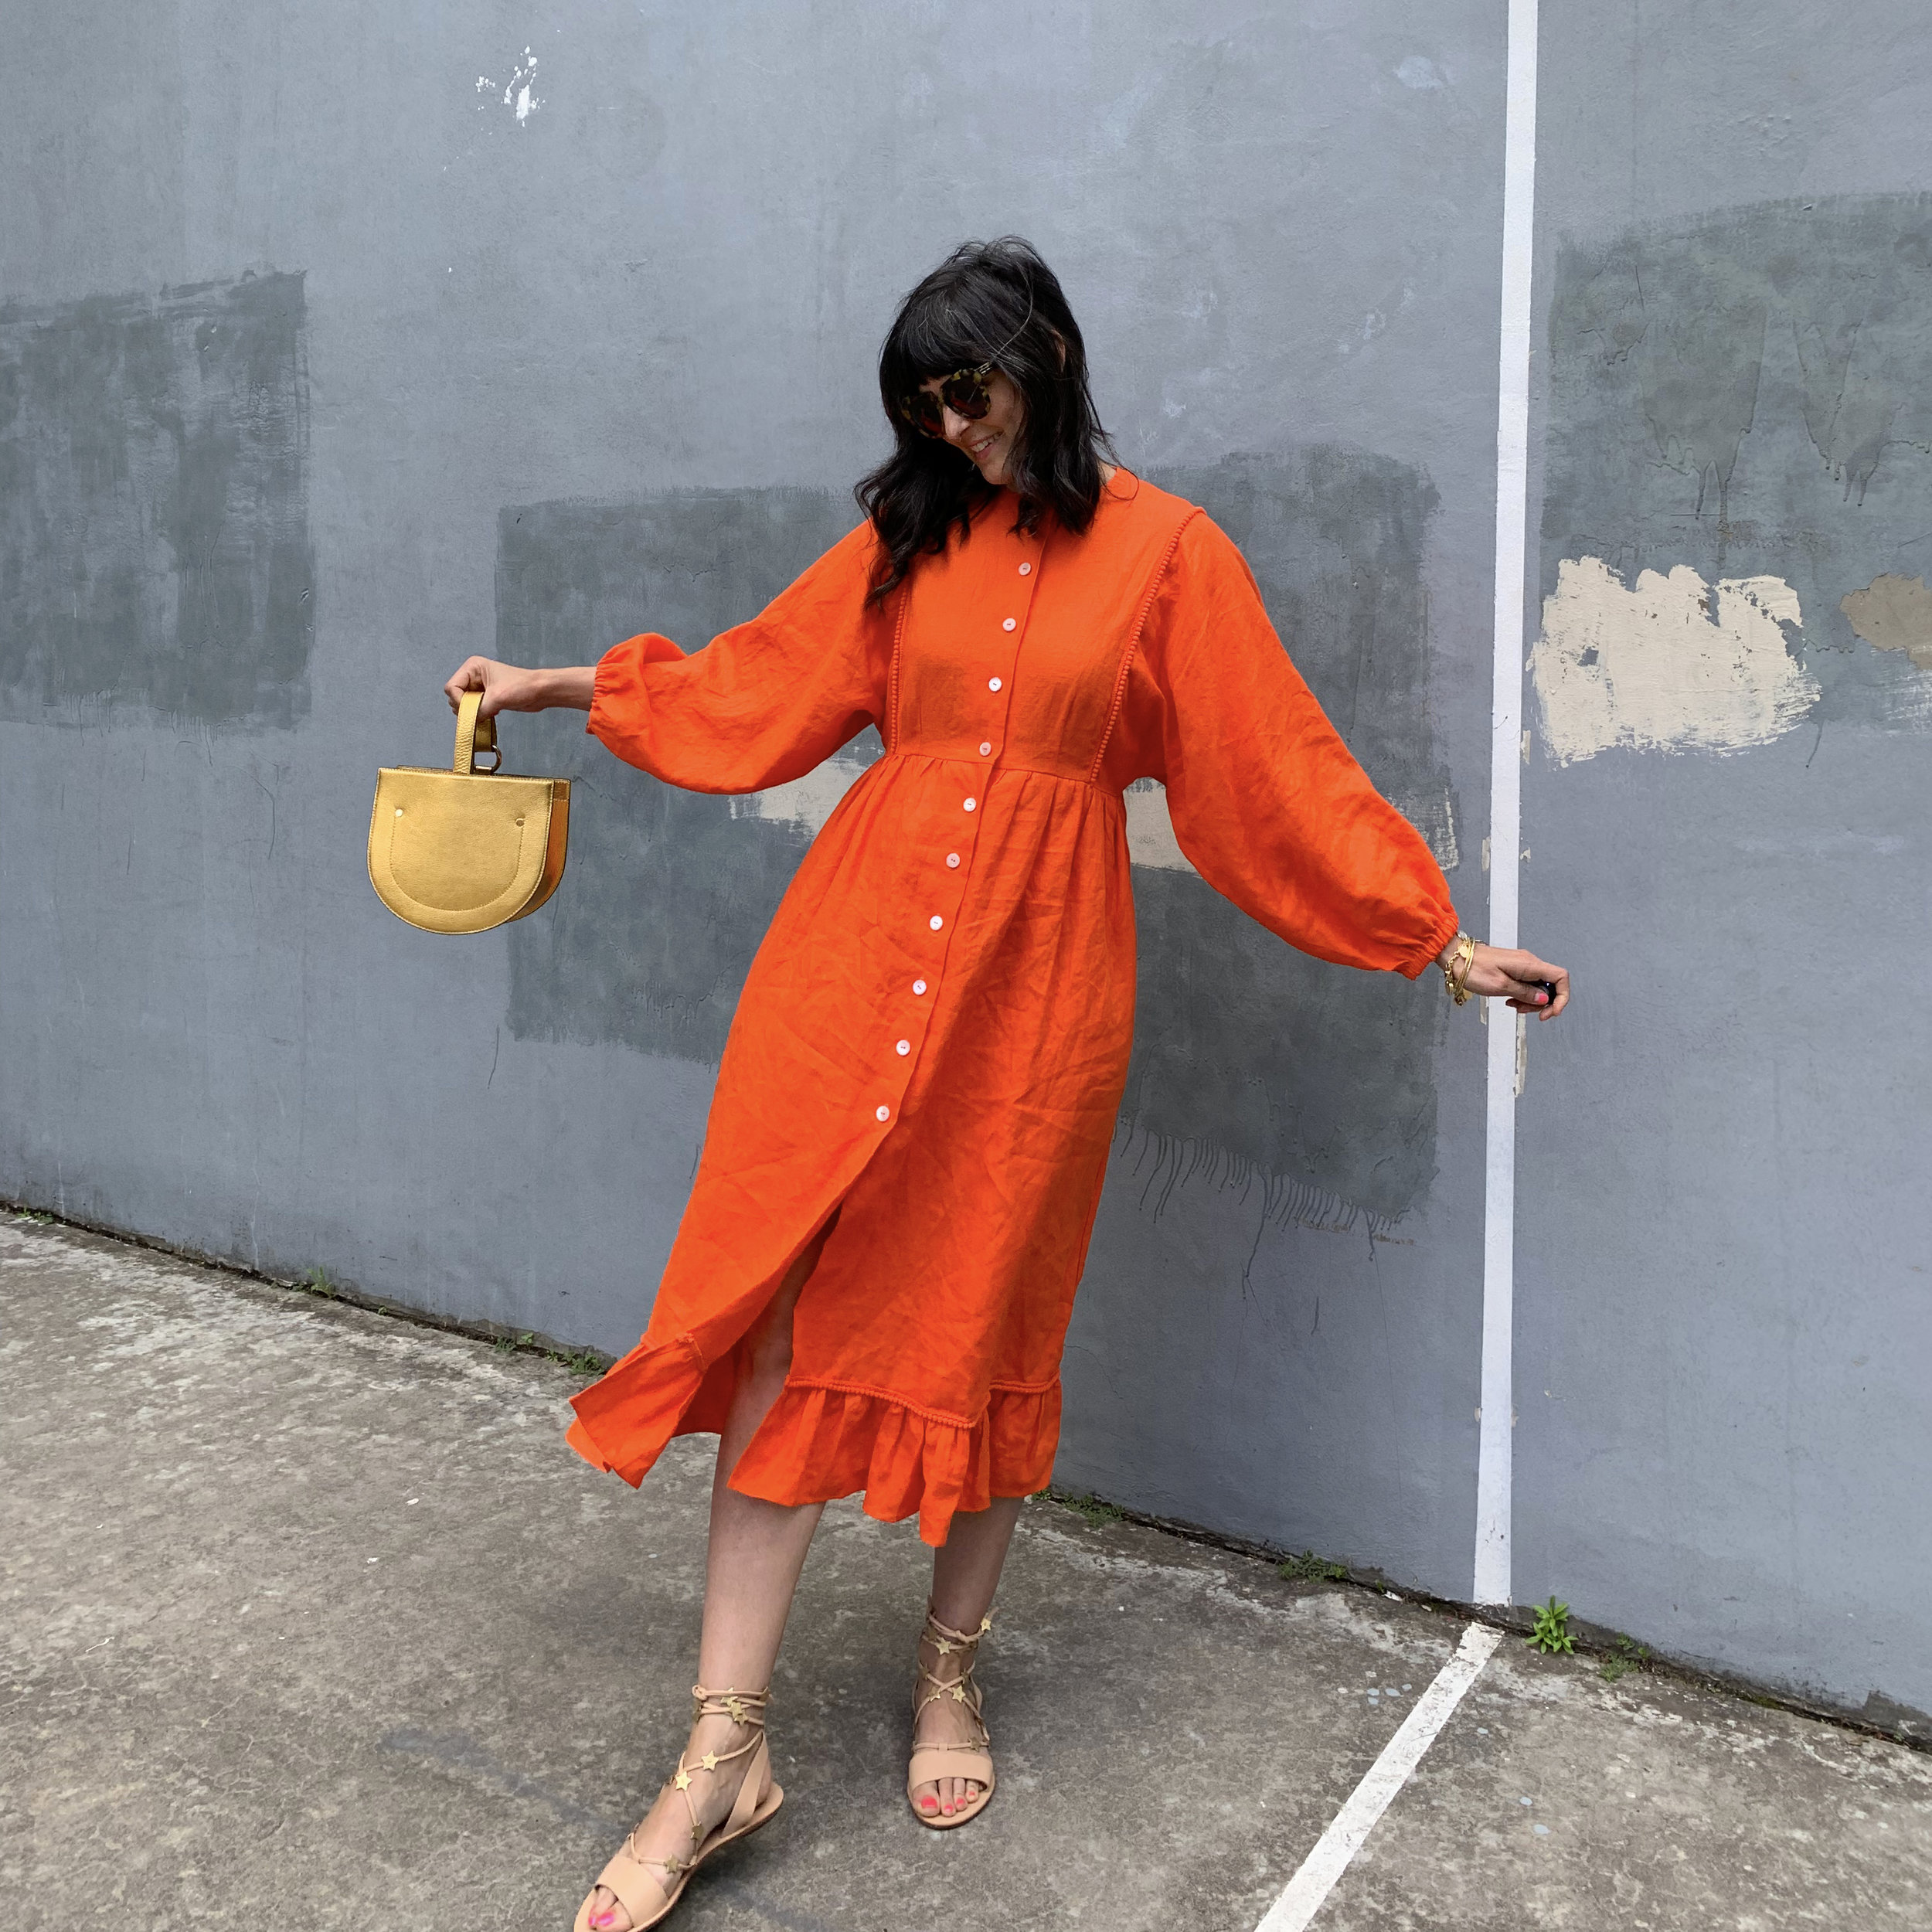 ORANGE DRESS pose 2.jpg